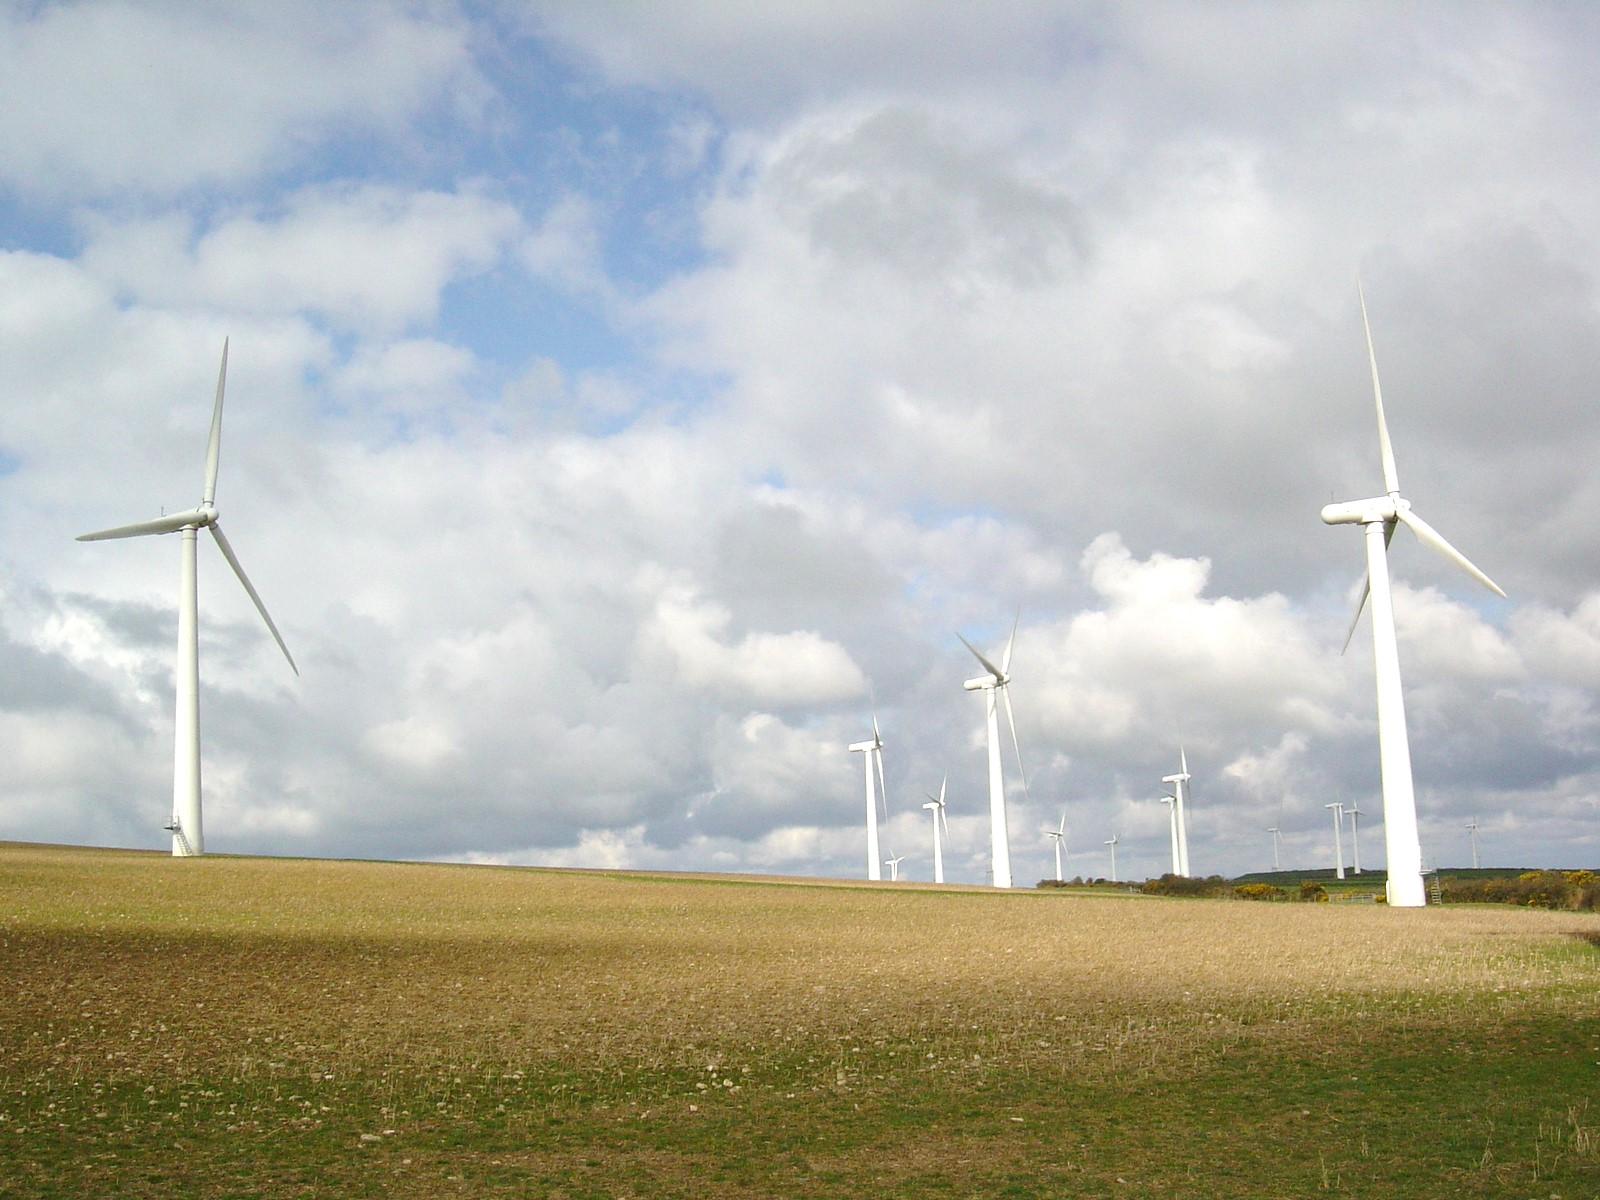 Making an Impact: Researcher Sarah Mills gives Michigan communities the straight story on wind turbines